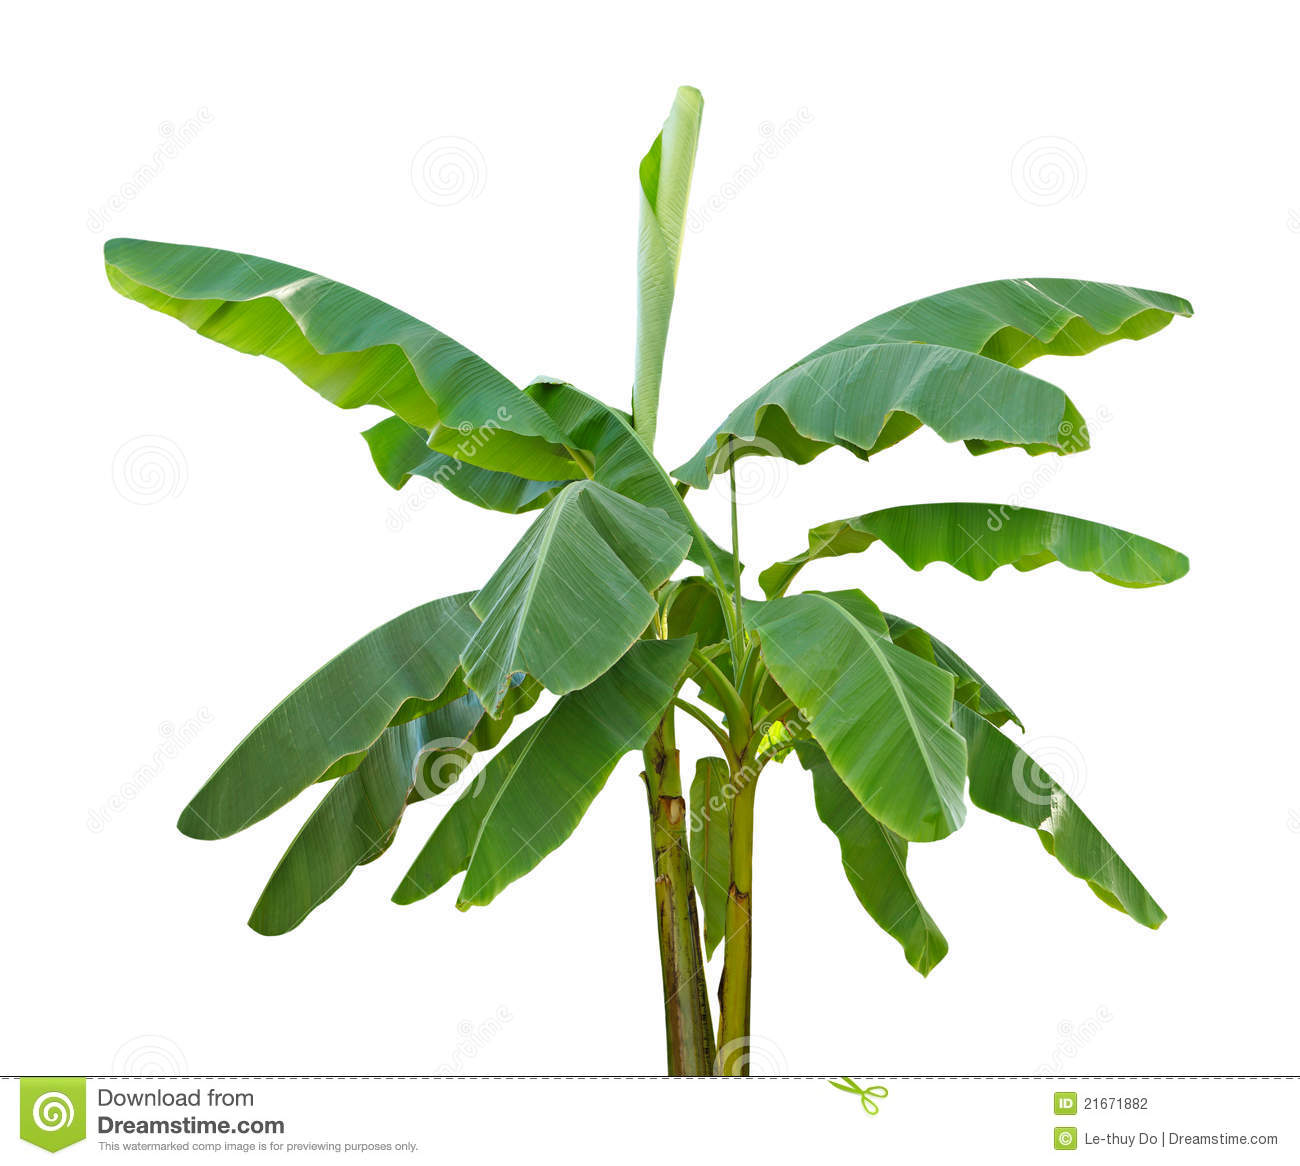 Banana Stem Stock Photos, Images, & Pictures.